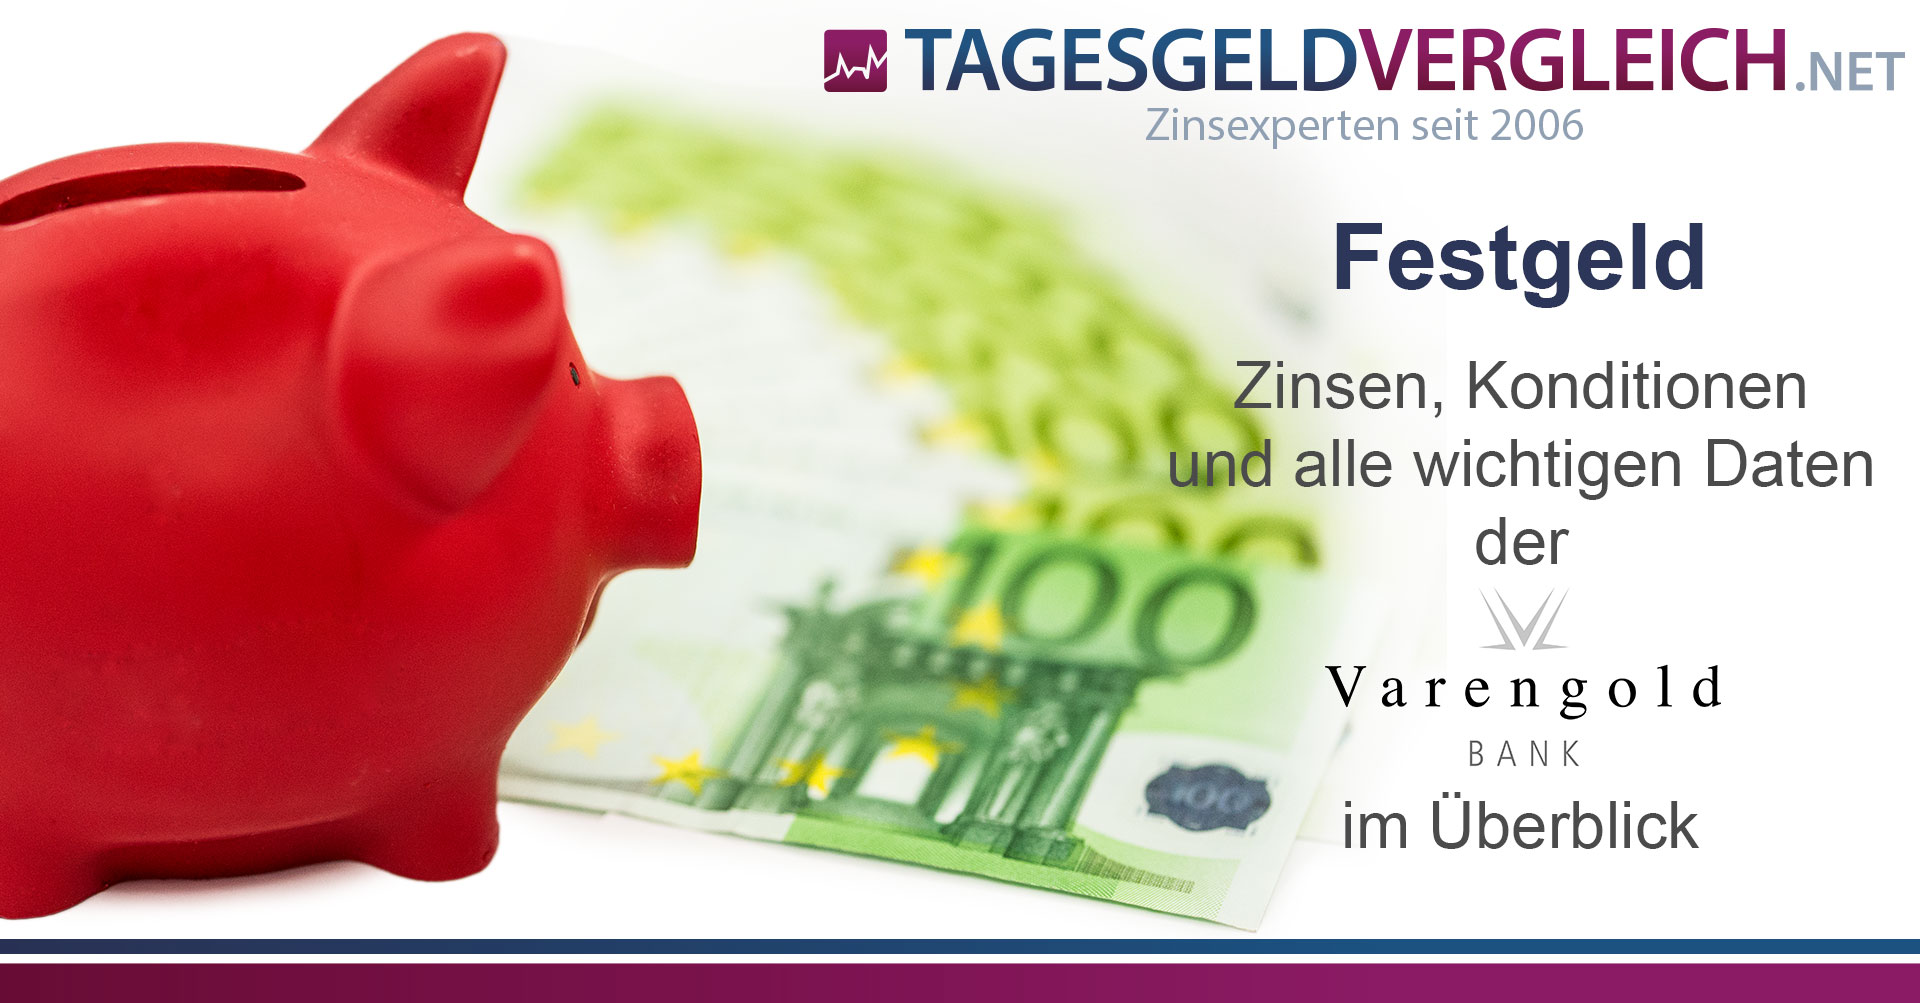 Varengold Bank Festgeld